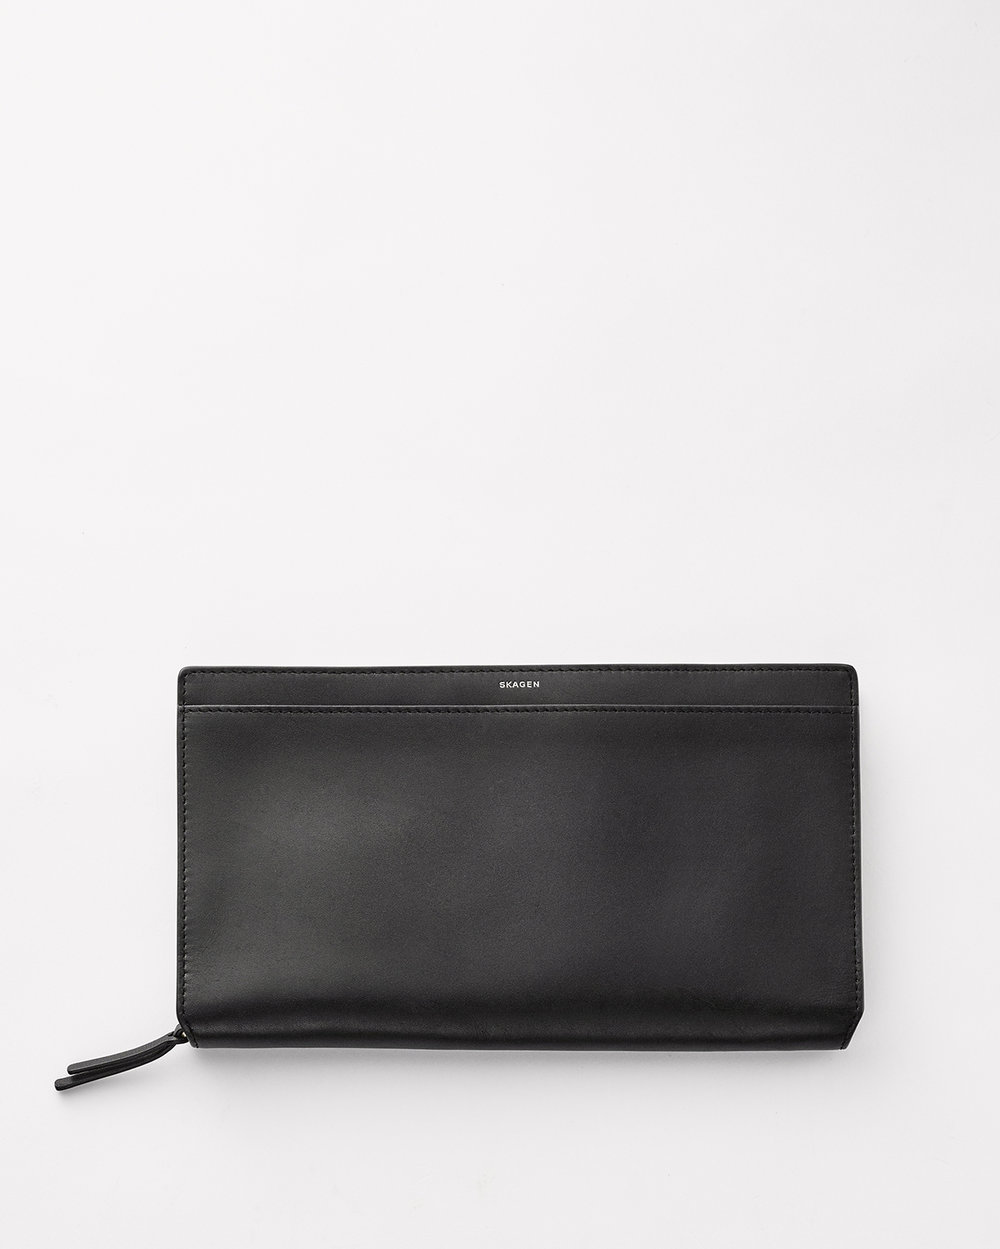 corie humble skagen travel wallet